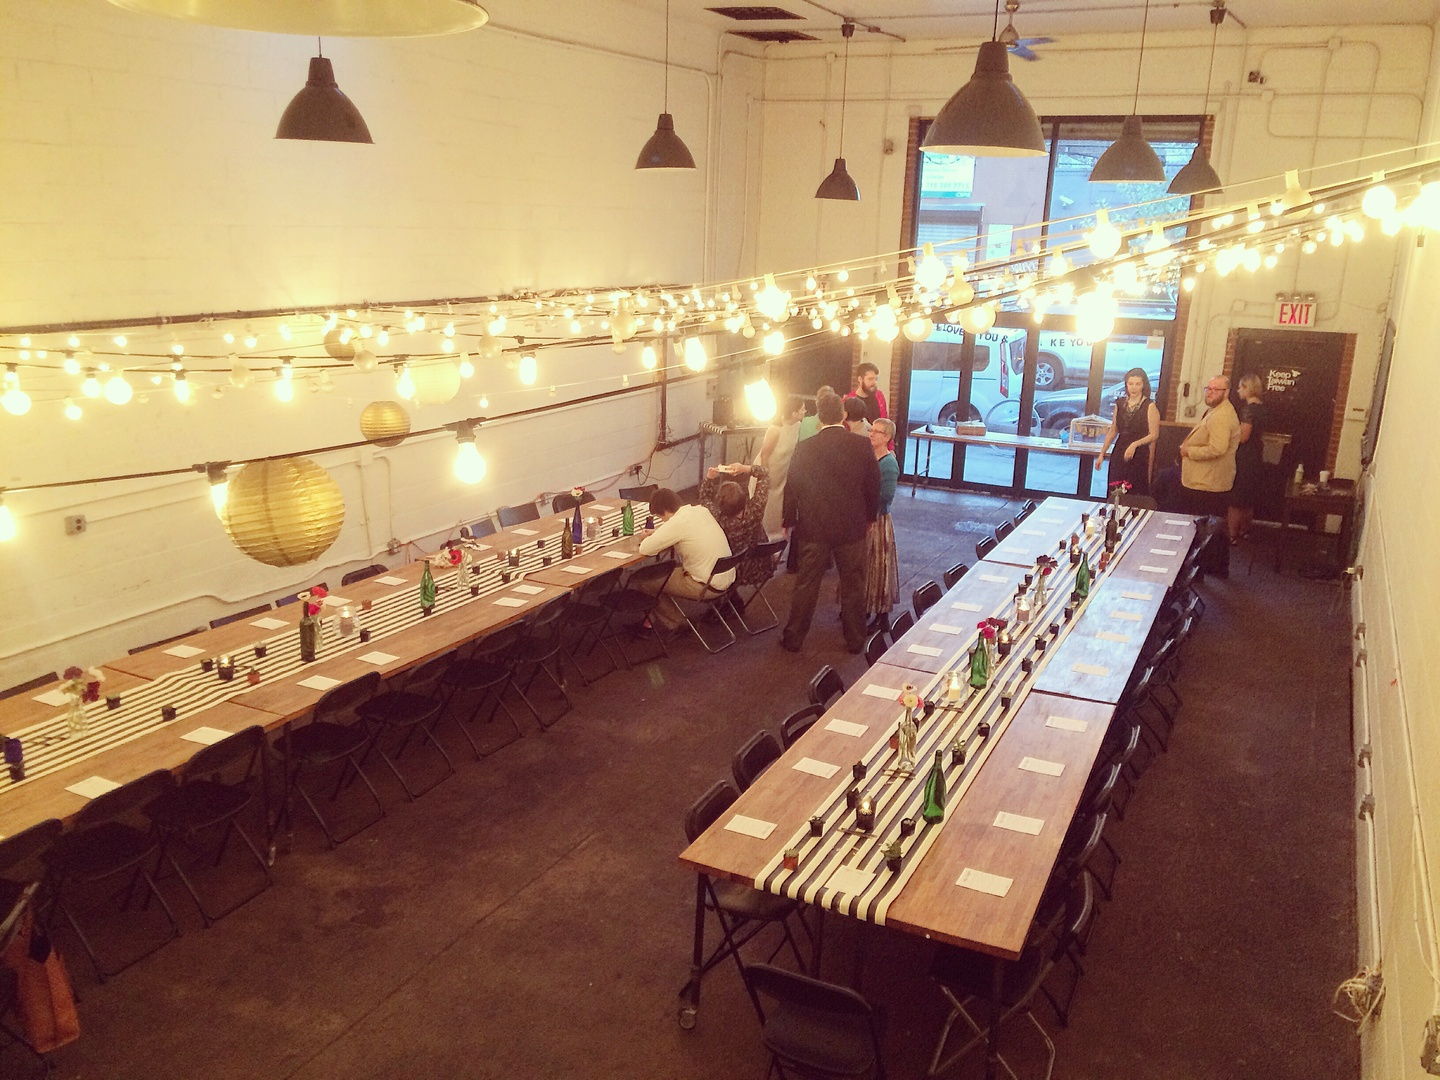 NYC corporate event venues Coworking space Bat Haus image 3